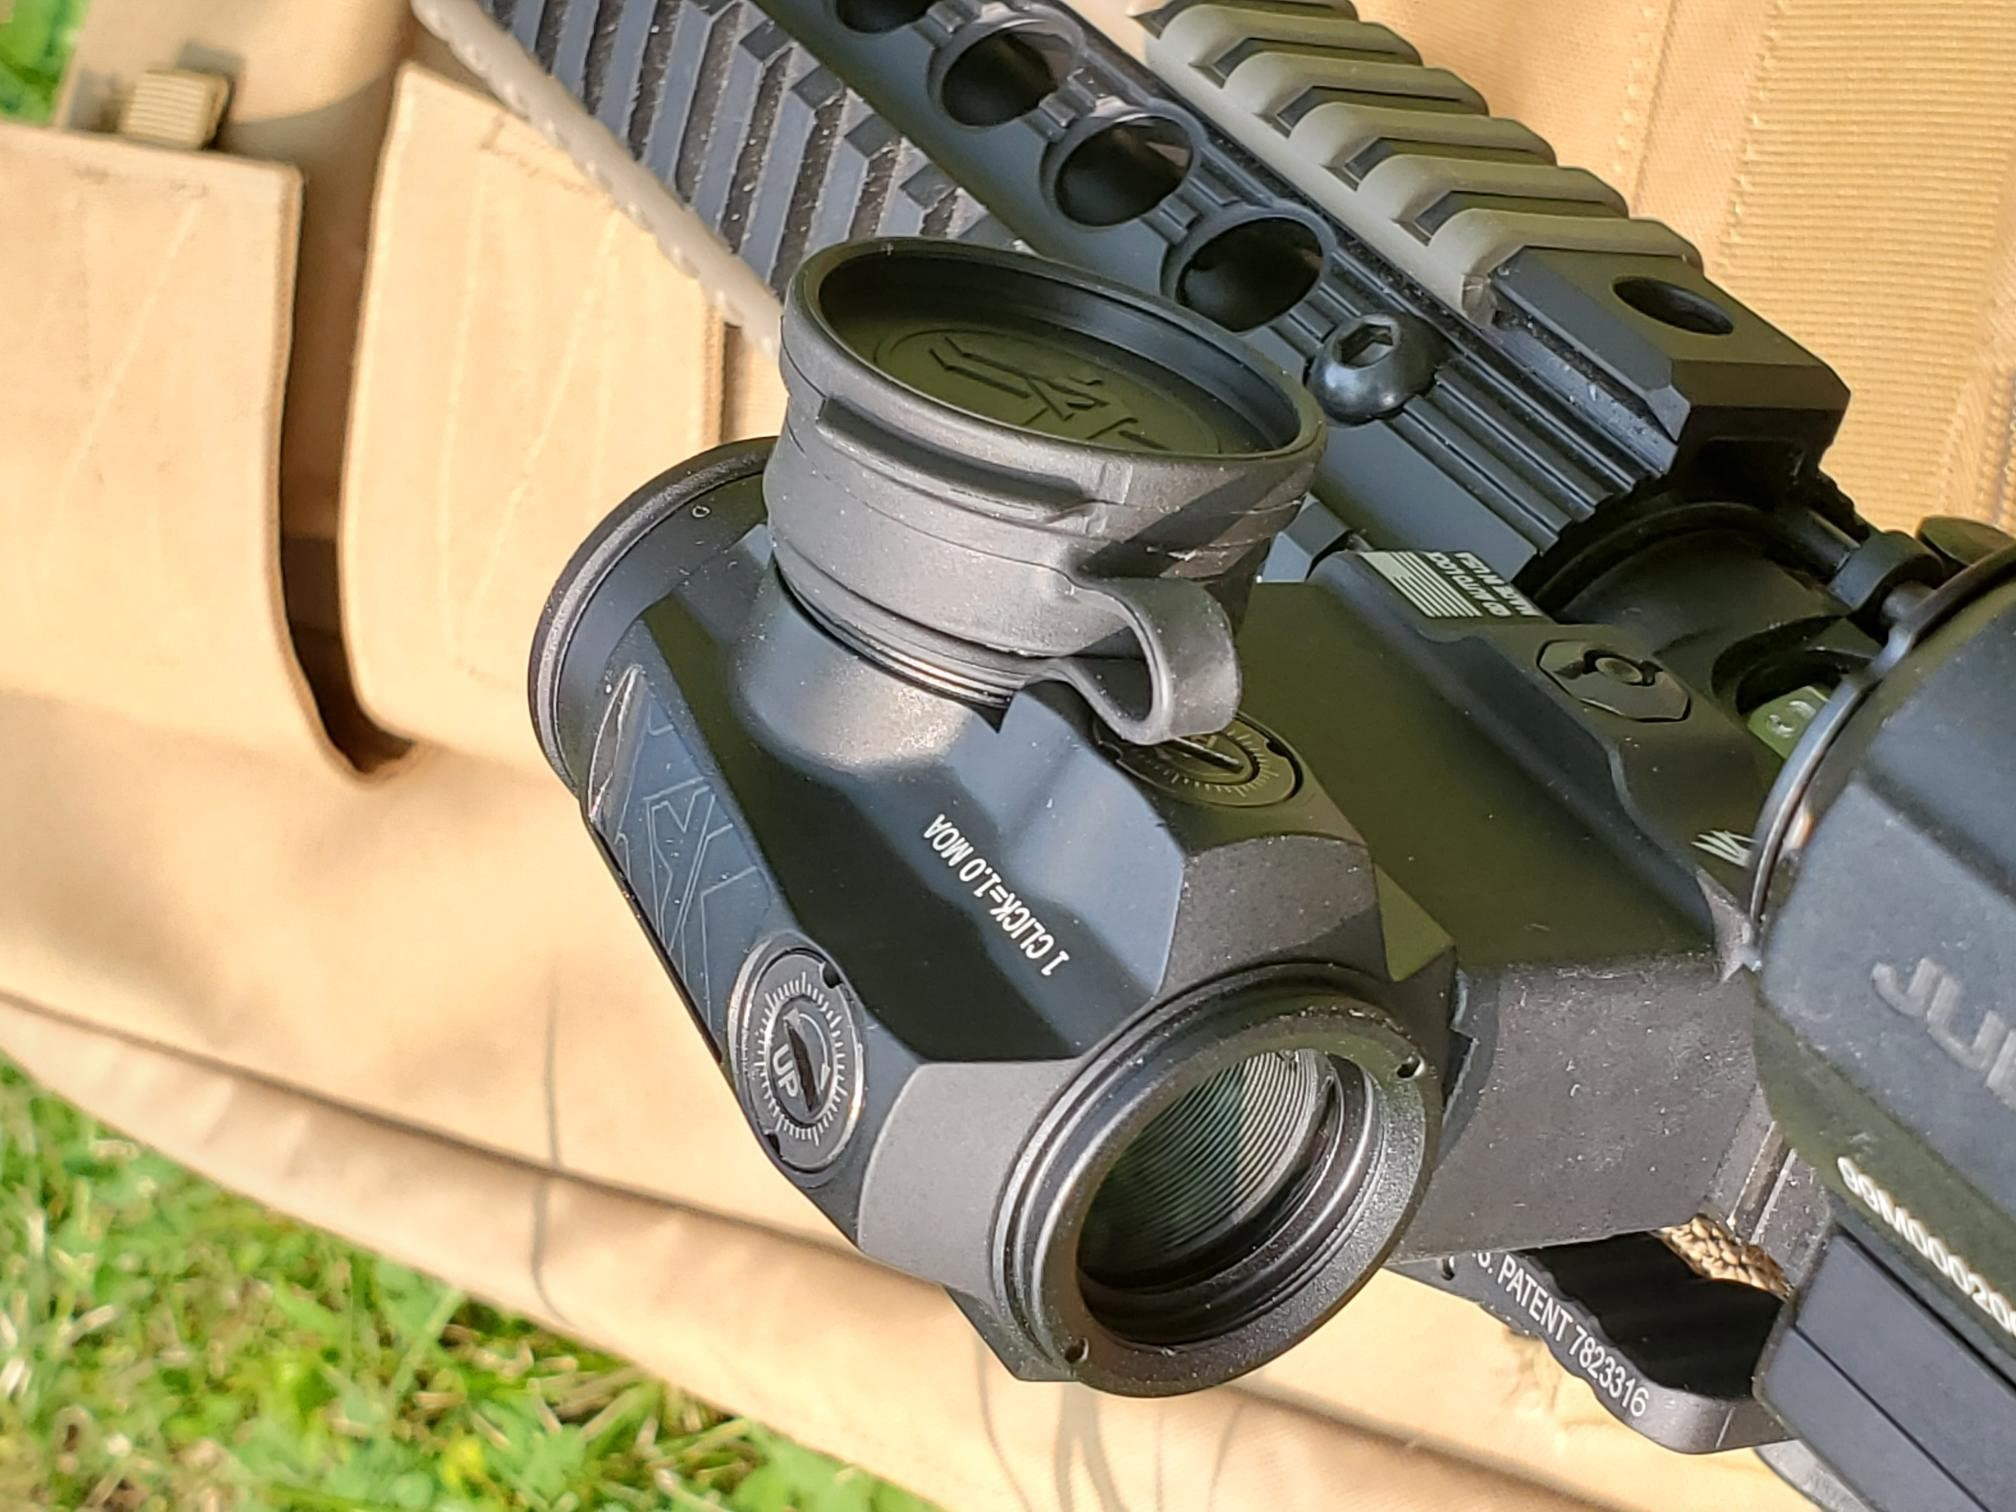 vortex sparc red dot sight mounted on AR